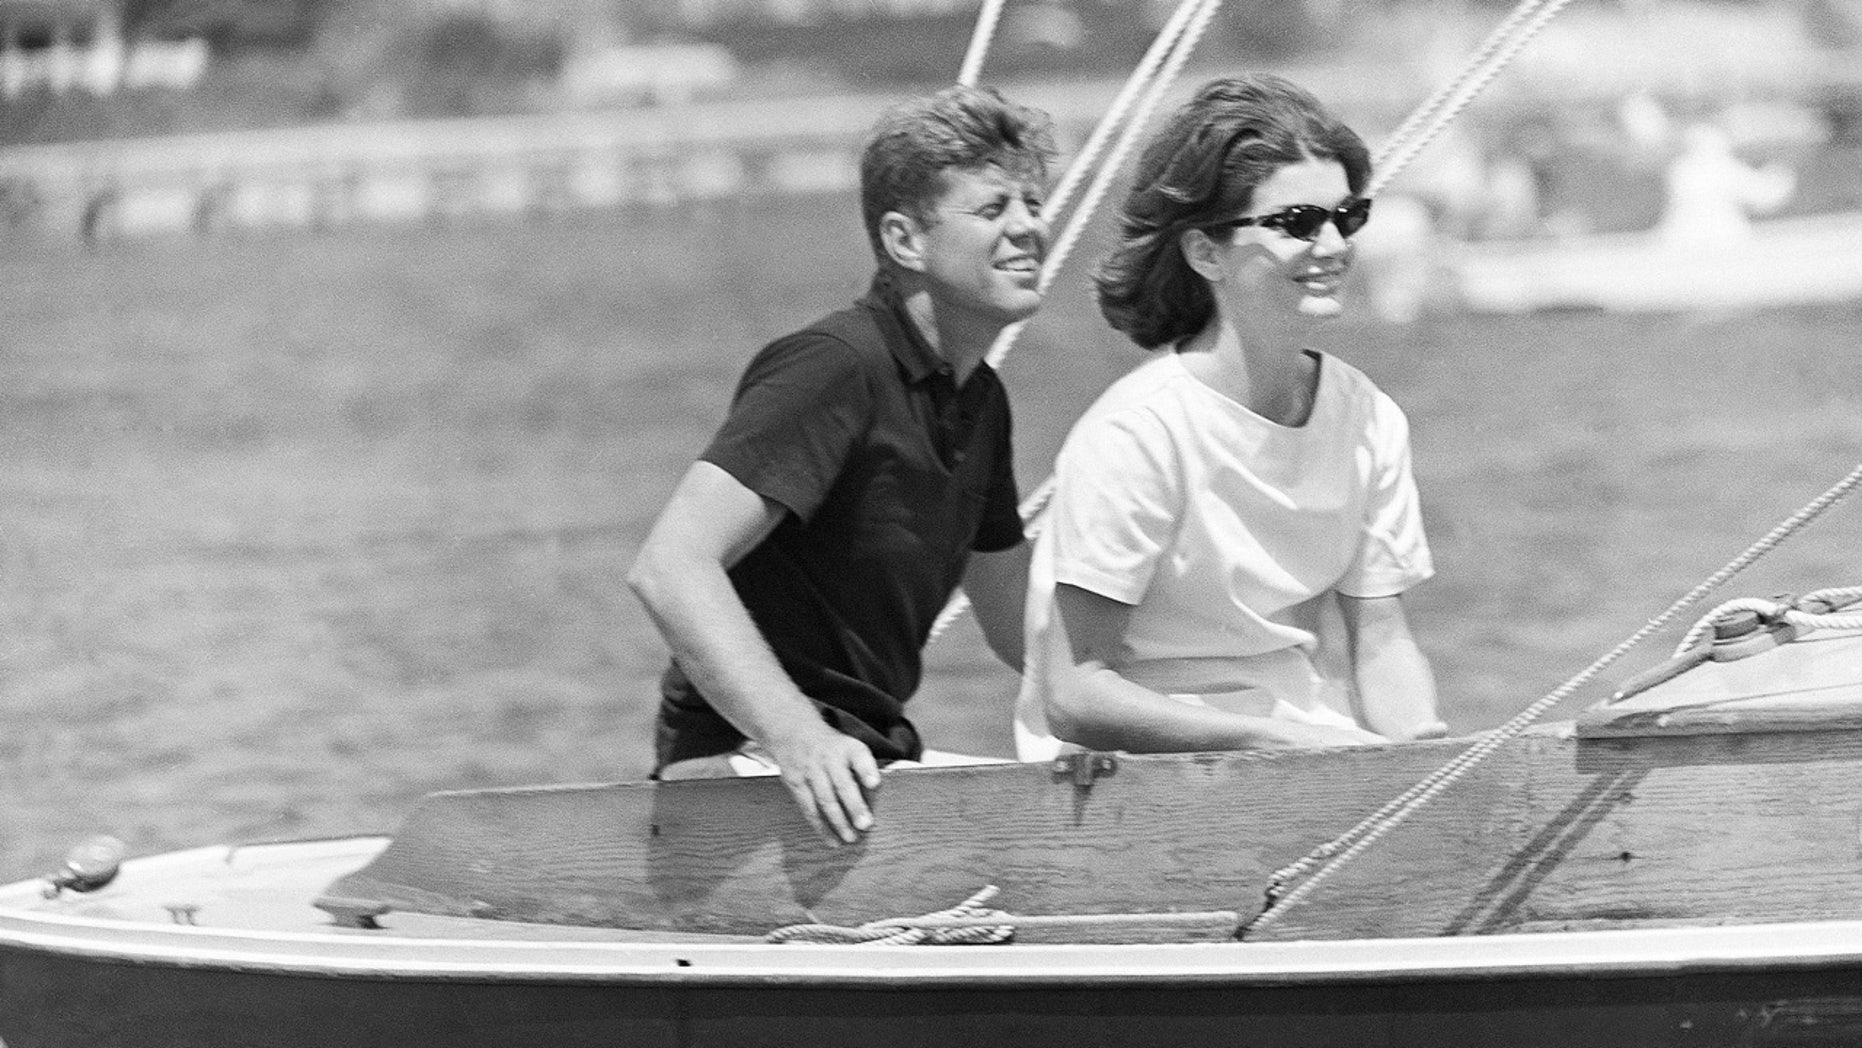 In this Aug. 7, 1960 file photo, then-Sen. John F. Kennedy and wife Jacqueline sail in the family sailboat, Victura, off the Cape Cod shore at Hyannis, Mass.